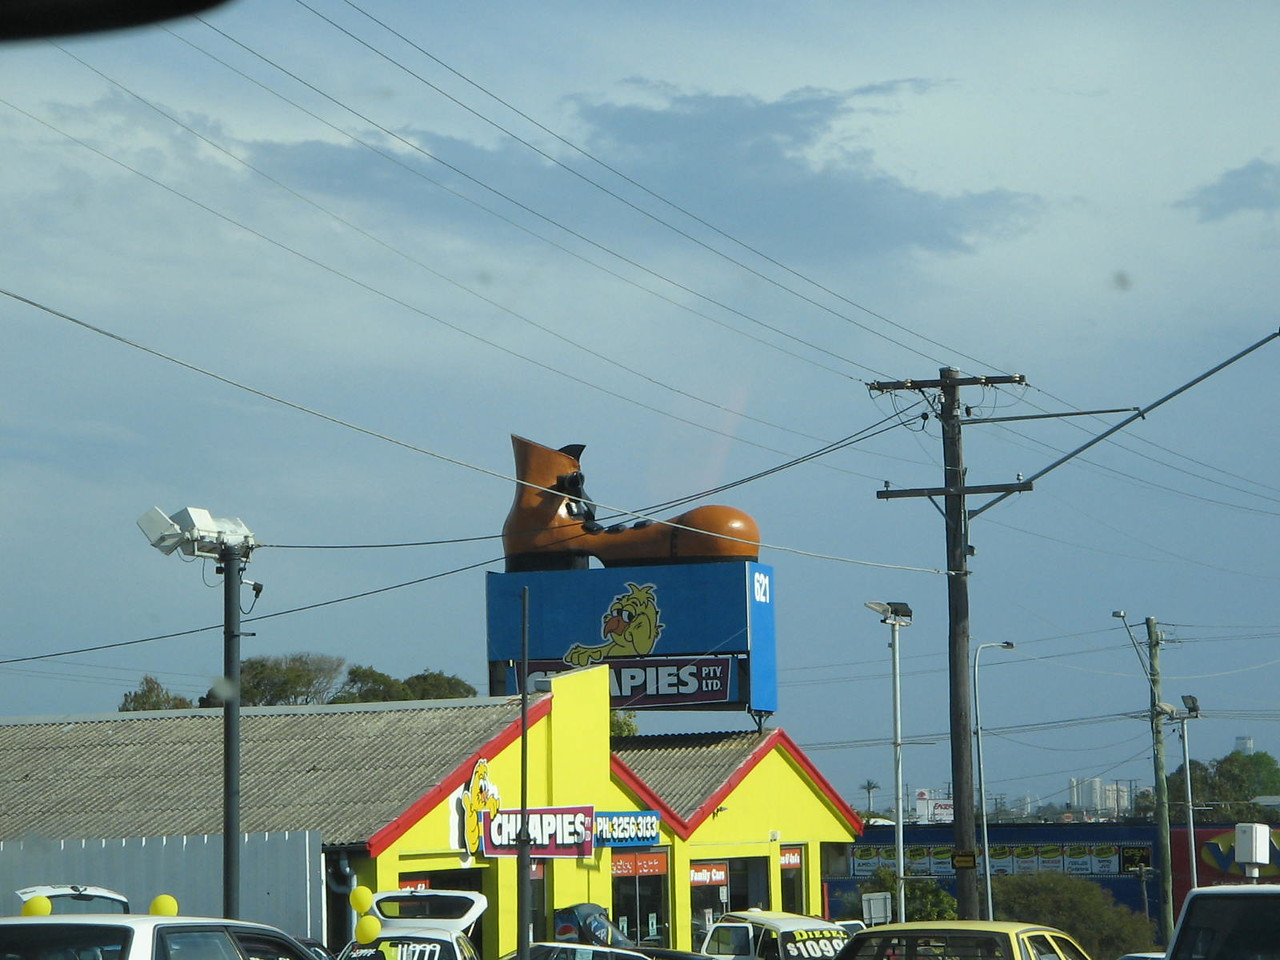 inexplicably, there is a big shoe on the top of this car lot.  ill accept any theories anyone might have?